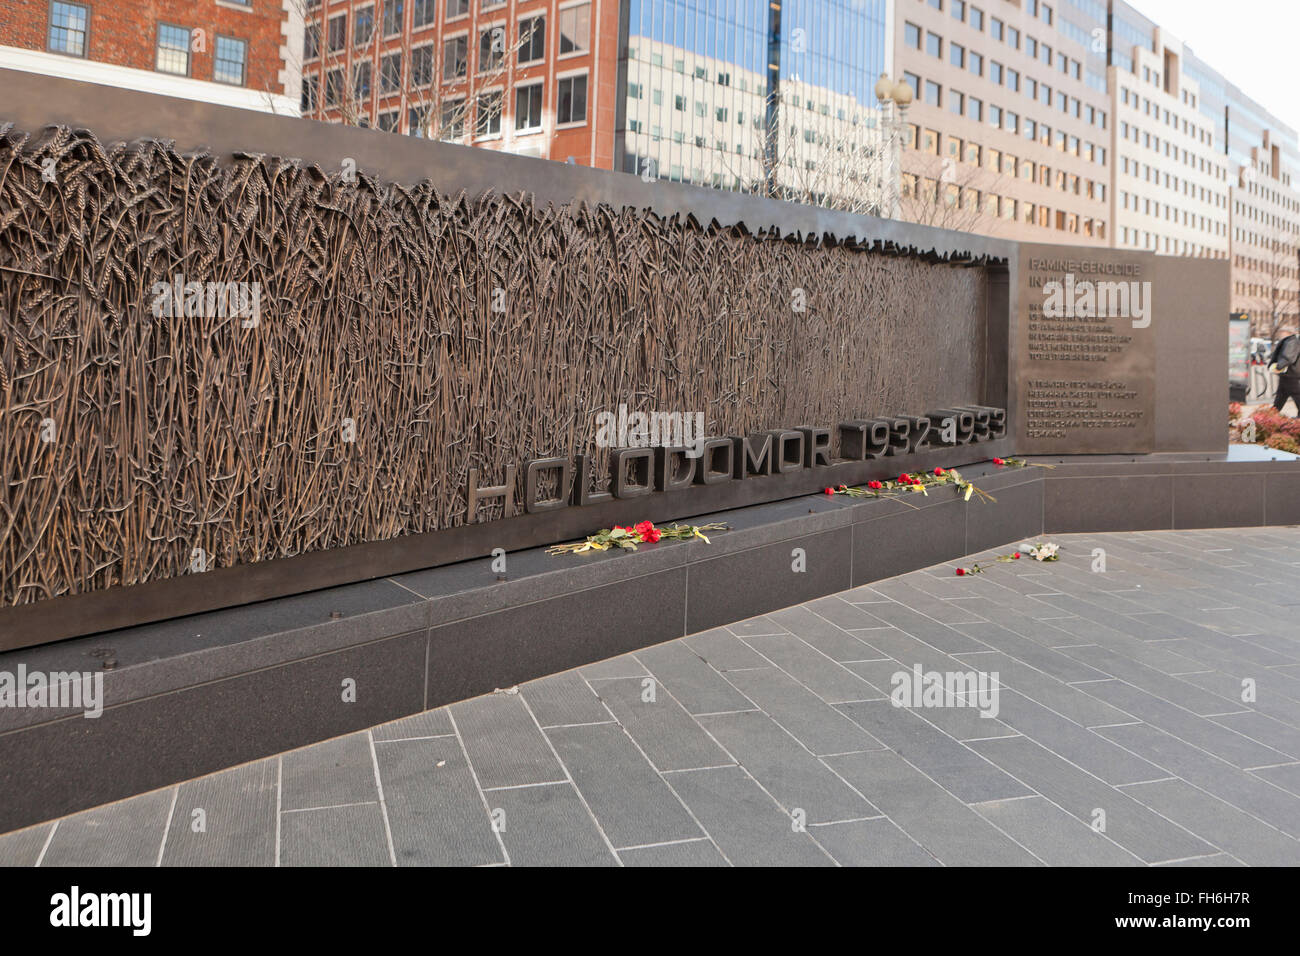 Holodomor Memorial to Victims of the Ukrainian Famine-Genocide of 1932–1933 - Washington, DC USA - Stock Image